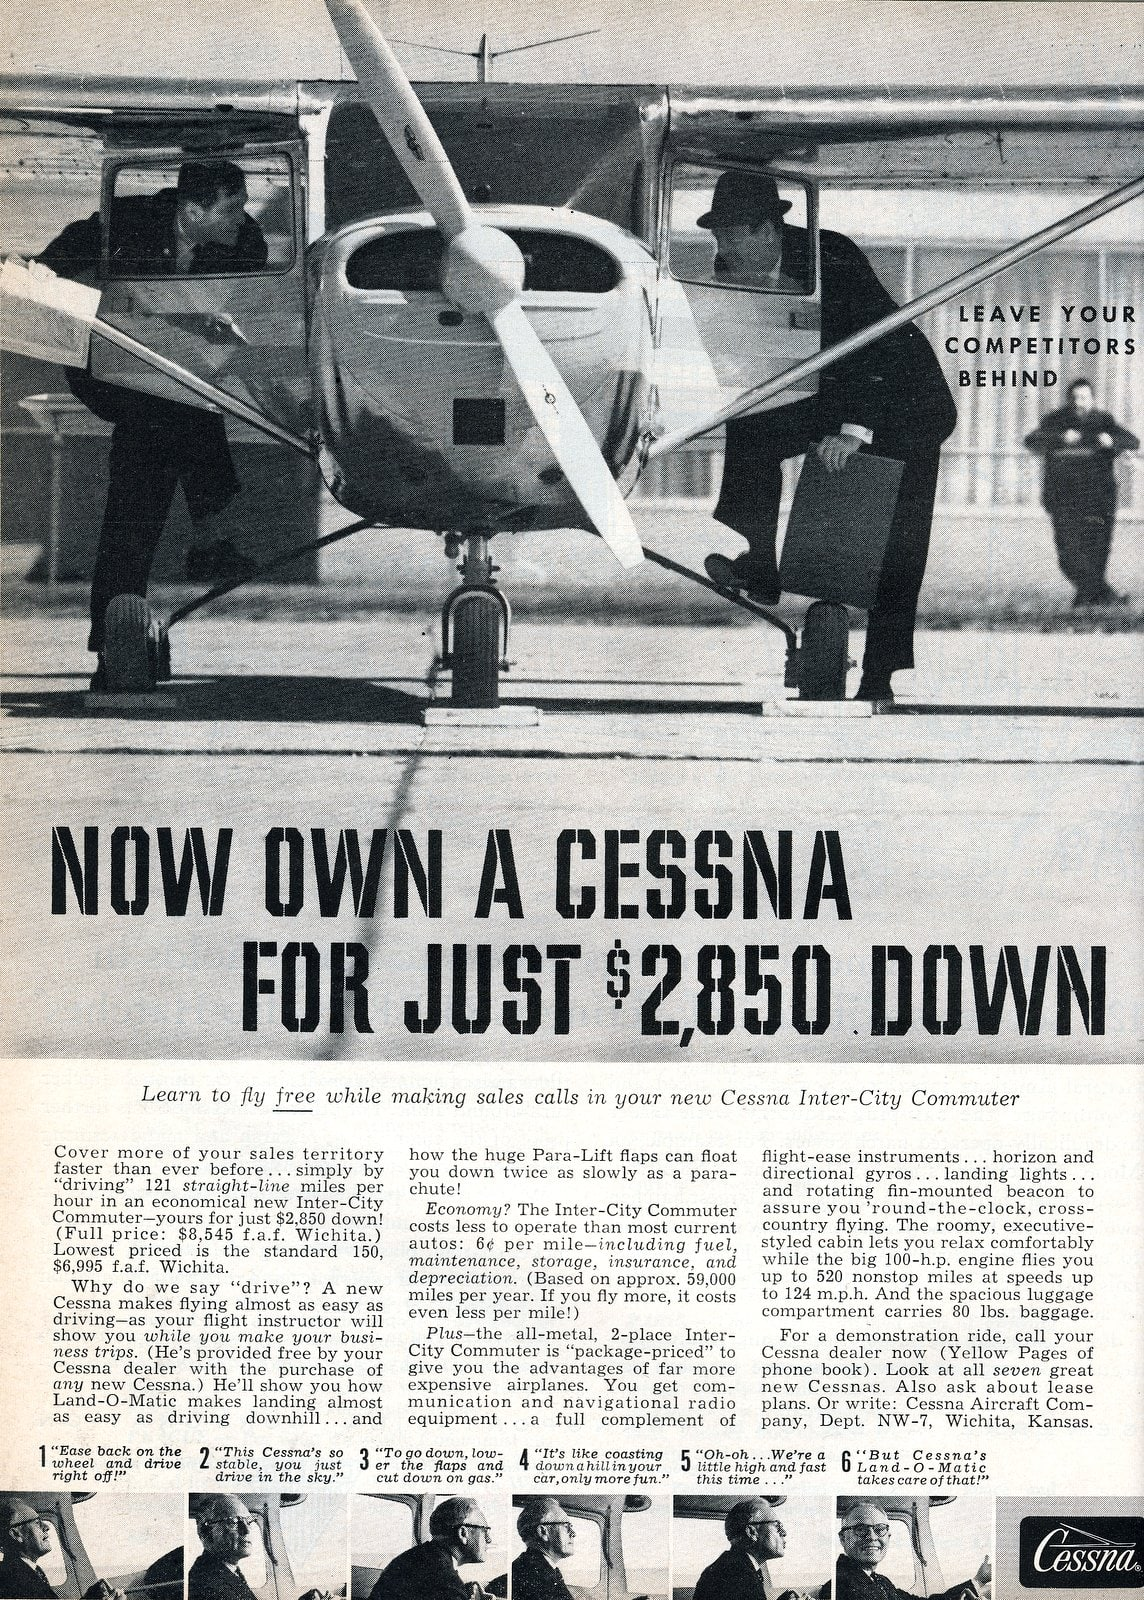 1950s Cessna propeller airplanes (1959)